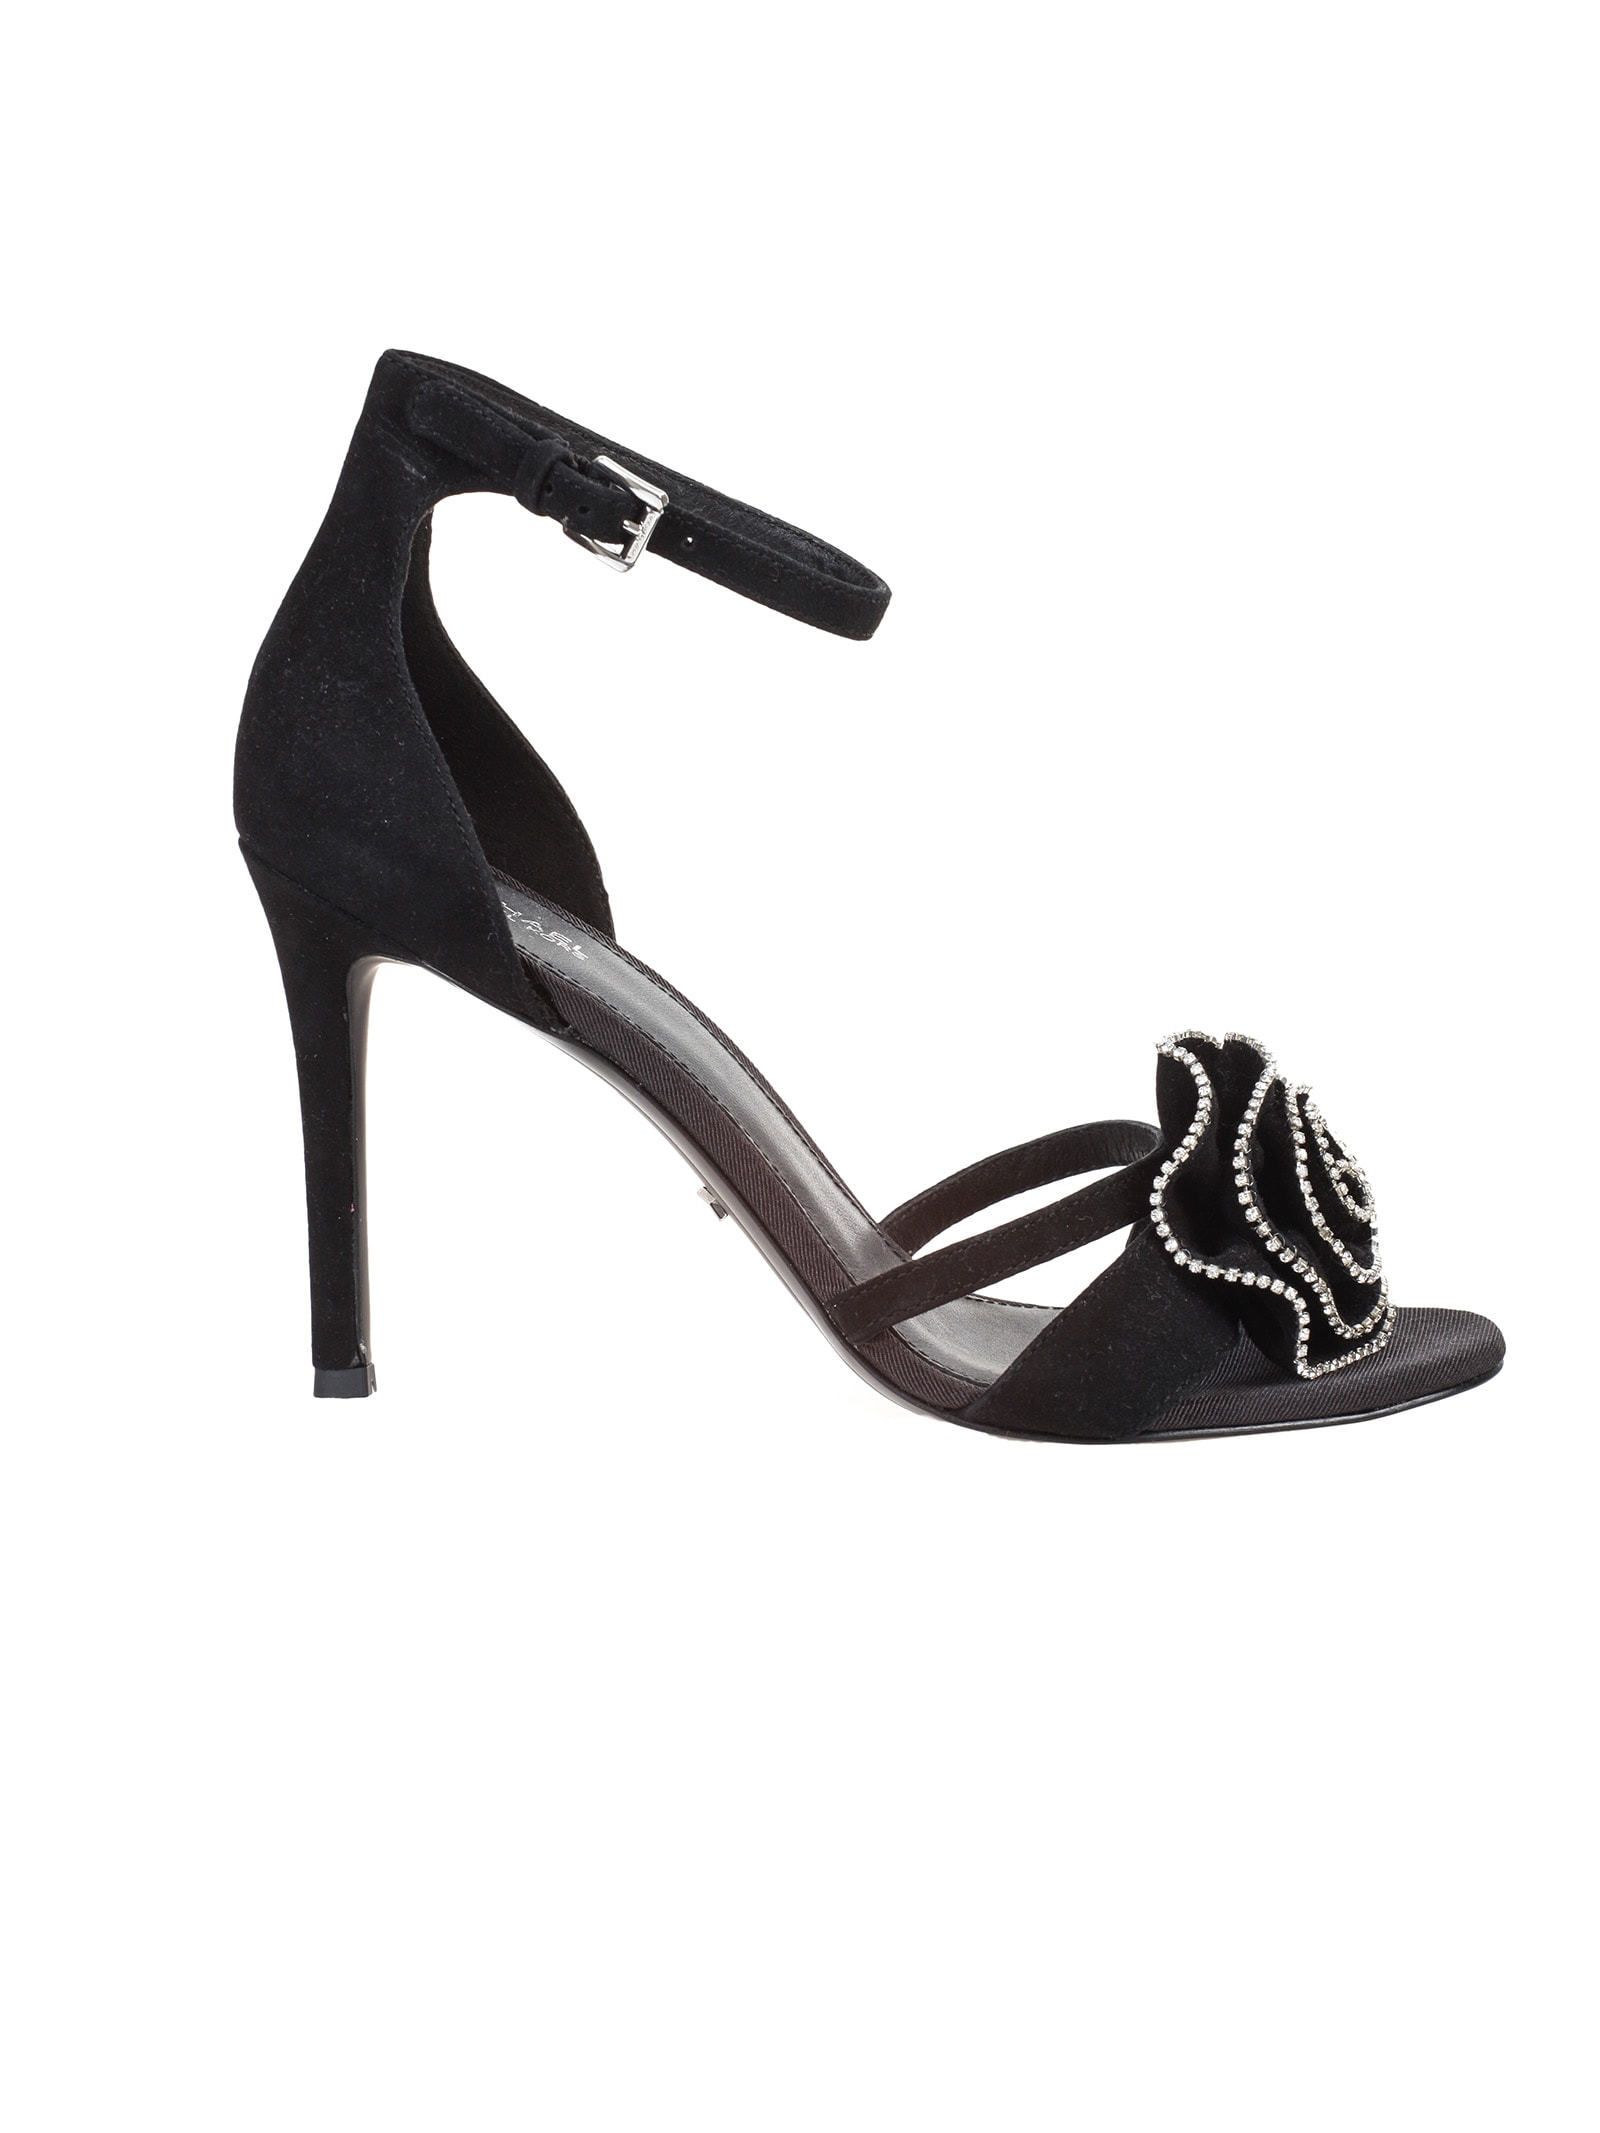 Buy Michael Michael Kors suede sandal online, shop Michael Kors shoes with free shipping